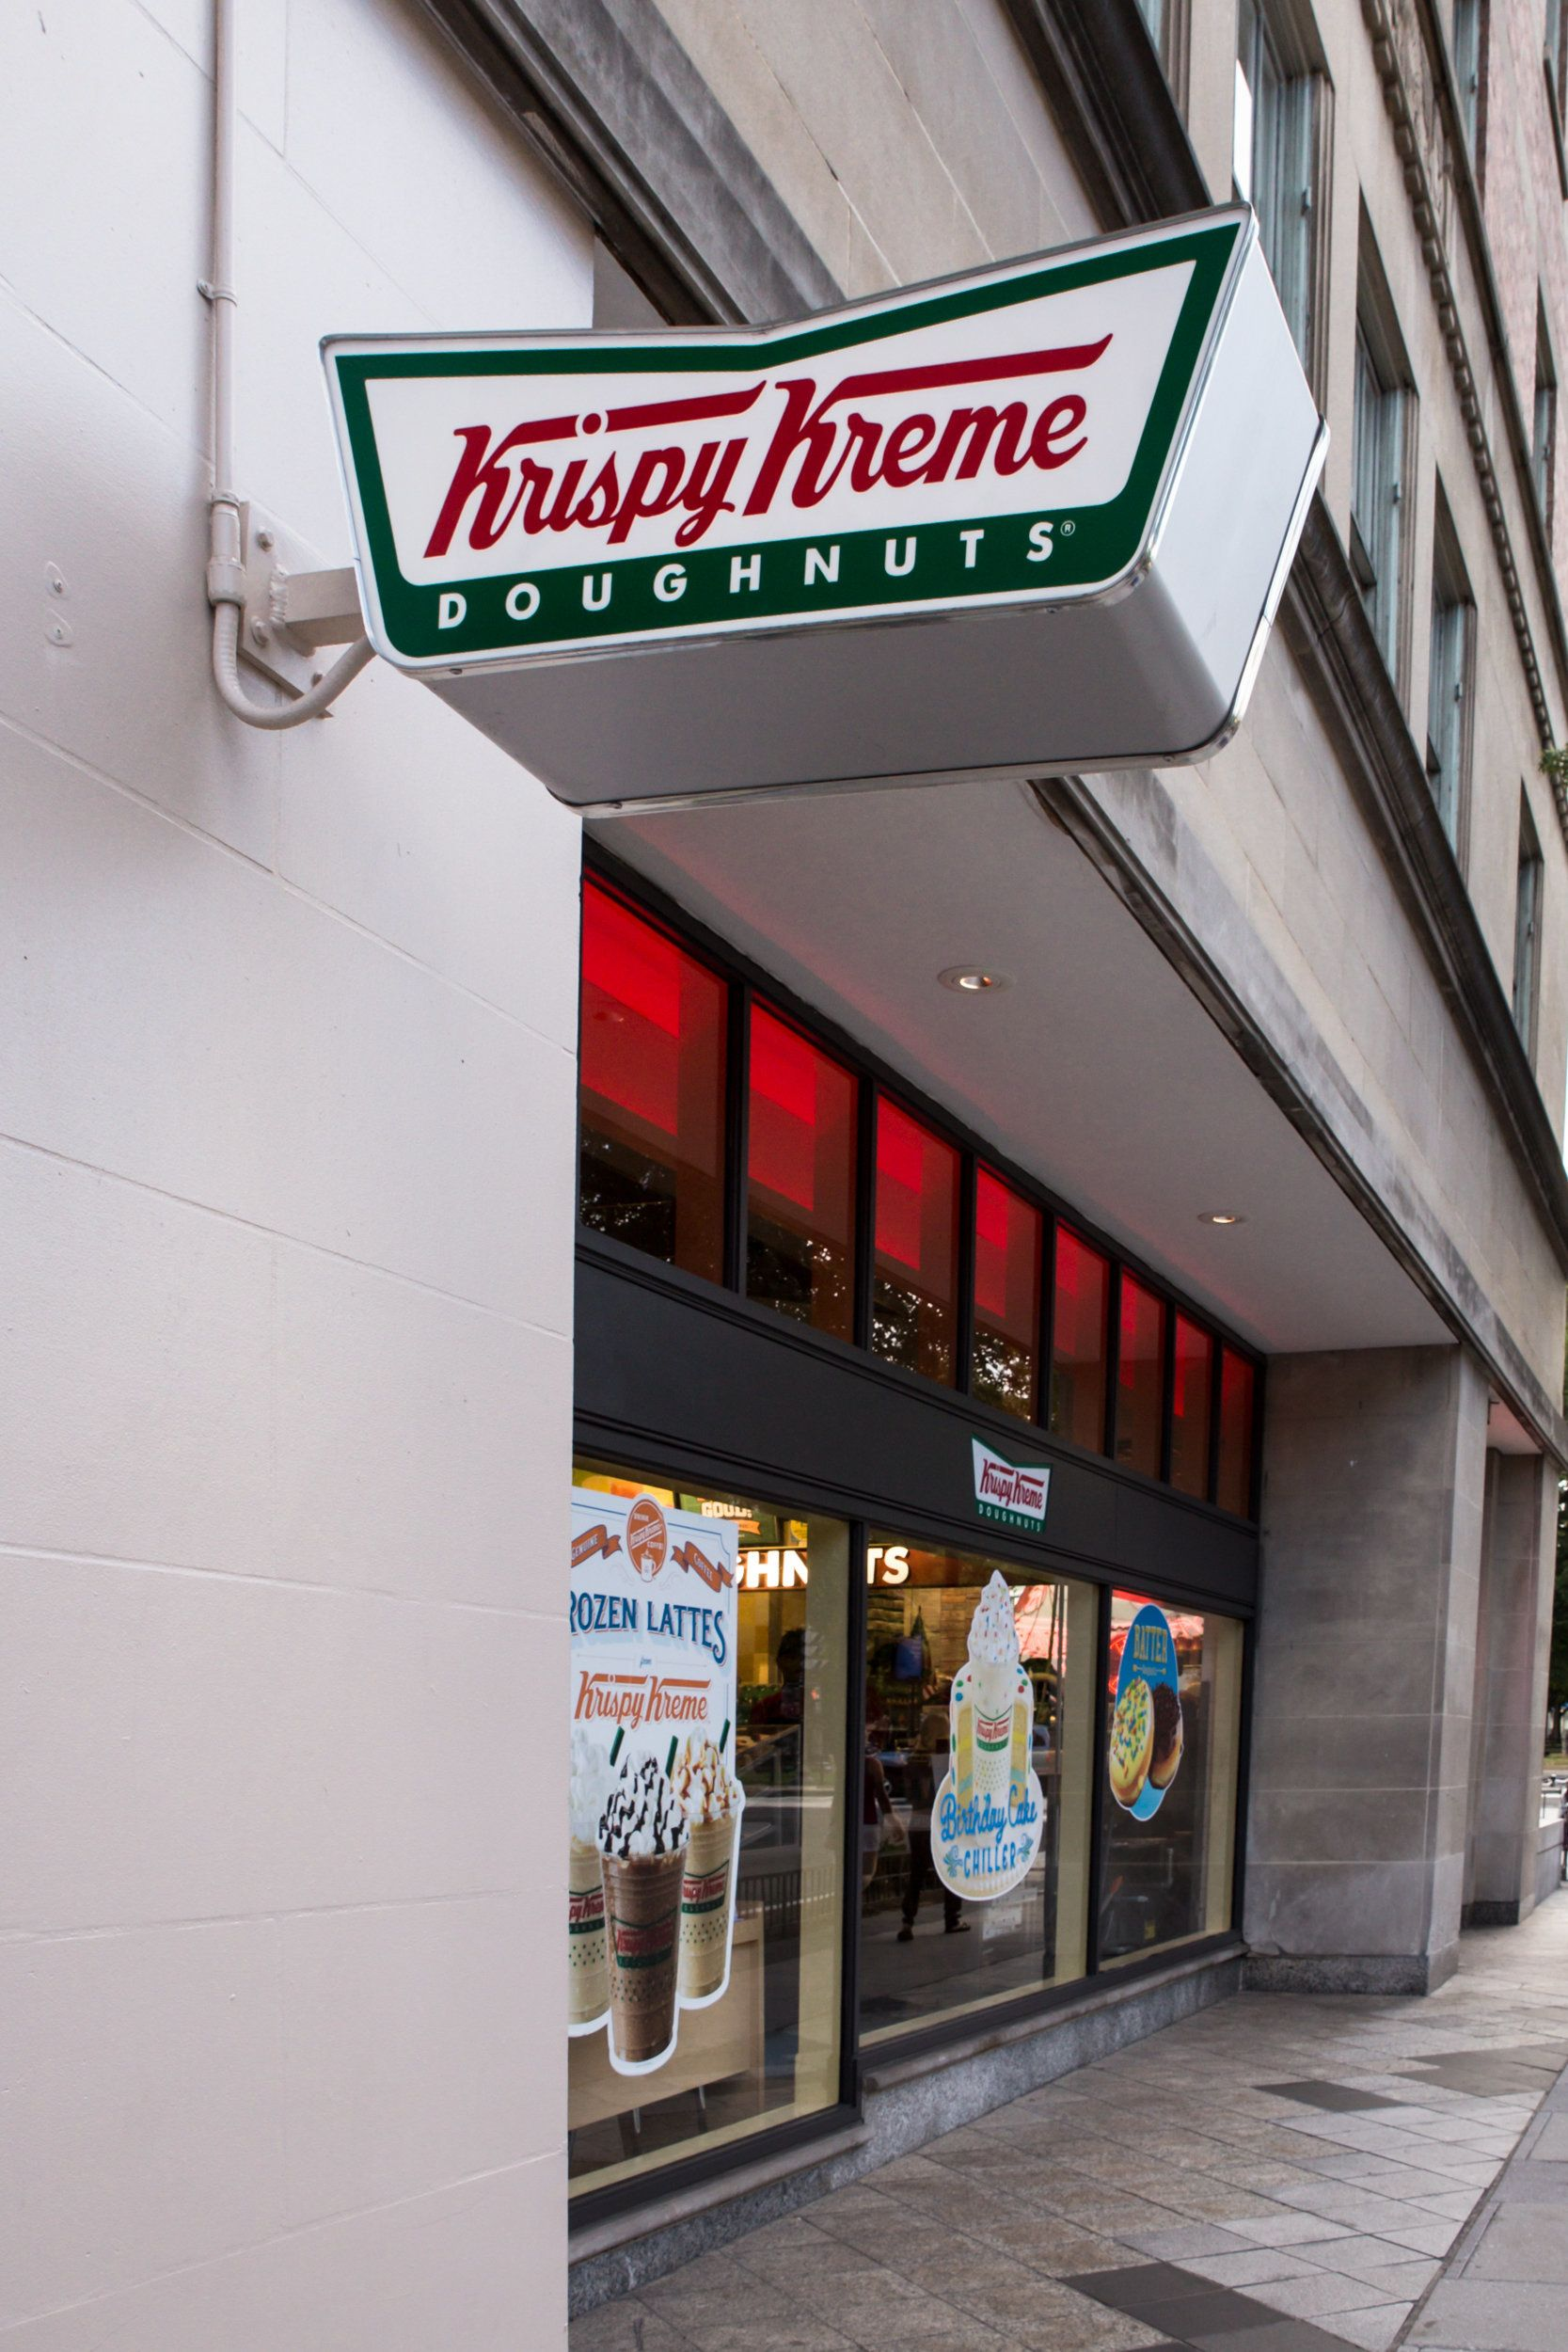 Washington DC, United States - August 8, 2015: View of the Krispy Kreme Doughnut storefront in Washington DC at Dupont Circle. Krispy Kreme Doughnuts, Inc. is a popular American global doughnut company and coffeehouse chain founded by   Vernon Rudolph